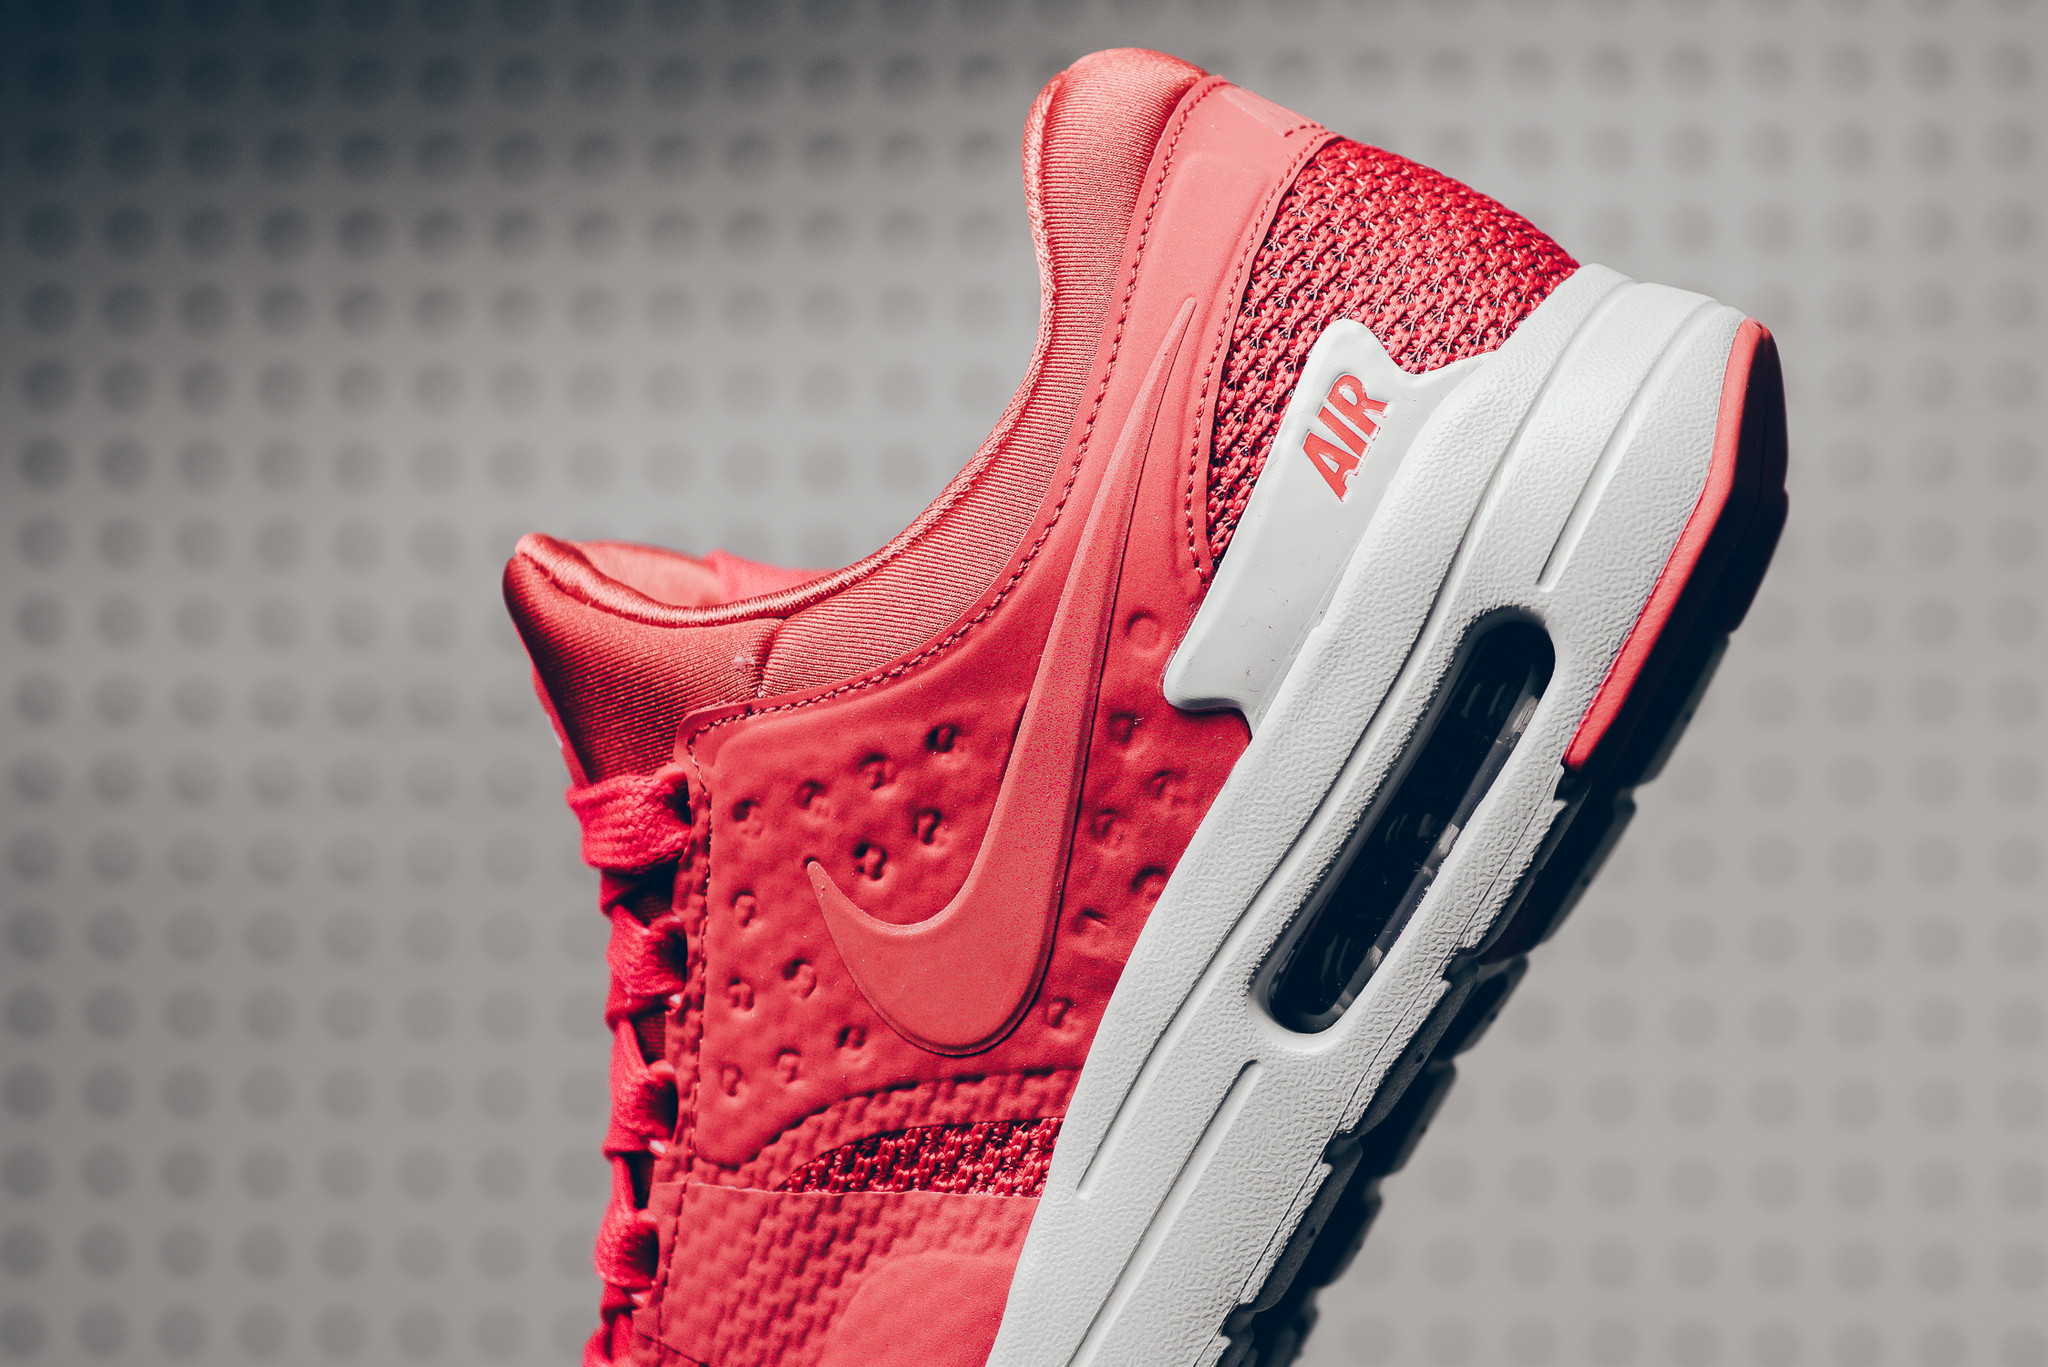 buy online a45fd 62337 Did You Pick Up The Nike Air Max Zero Gym Red? • KicksOnFire.com